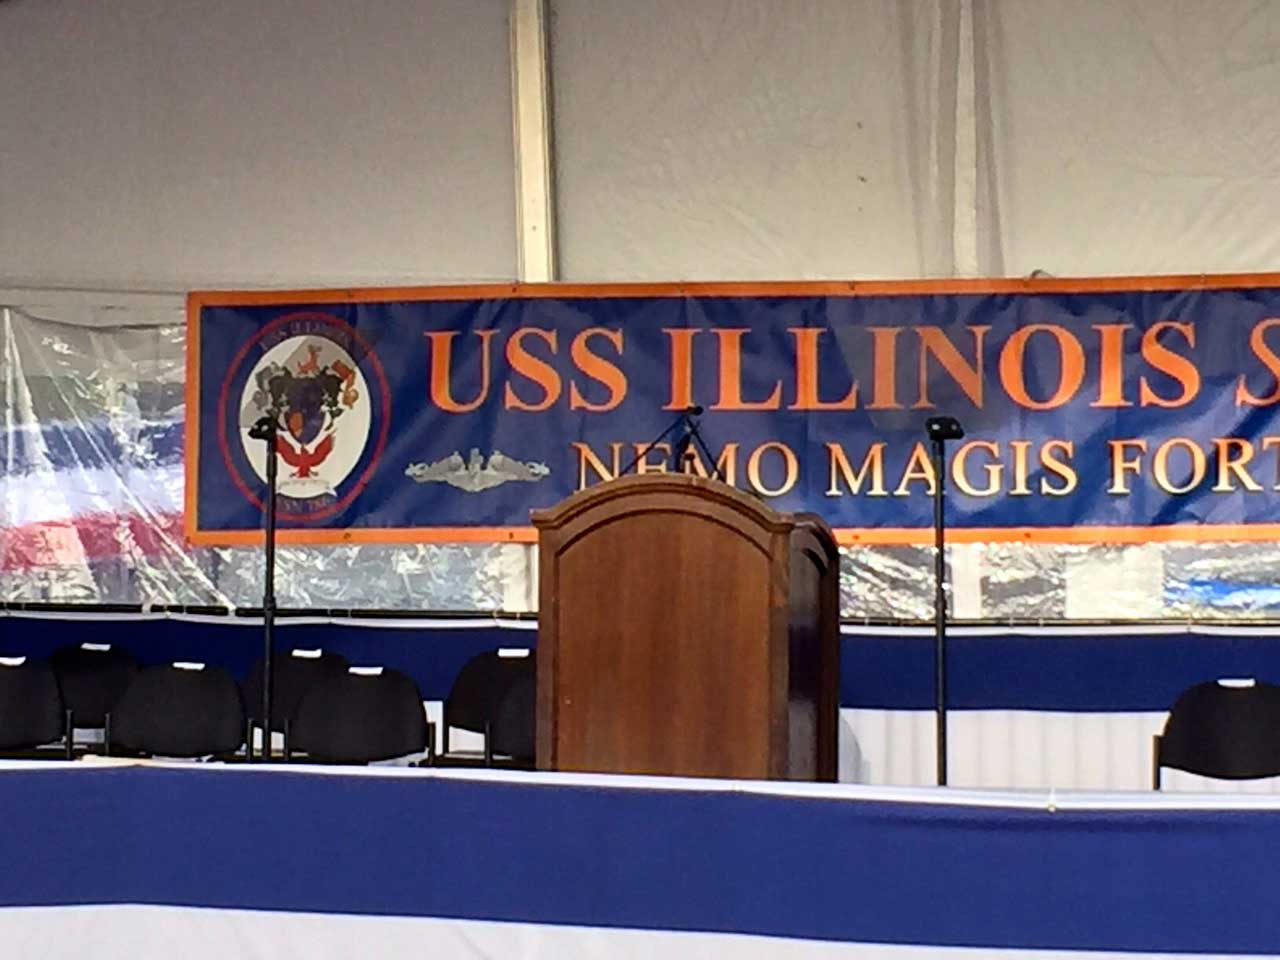 USS ILLINOIS COMMISSIONING CEREMONY - PRESIDENTIAL TELEPROMPTER